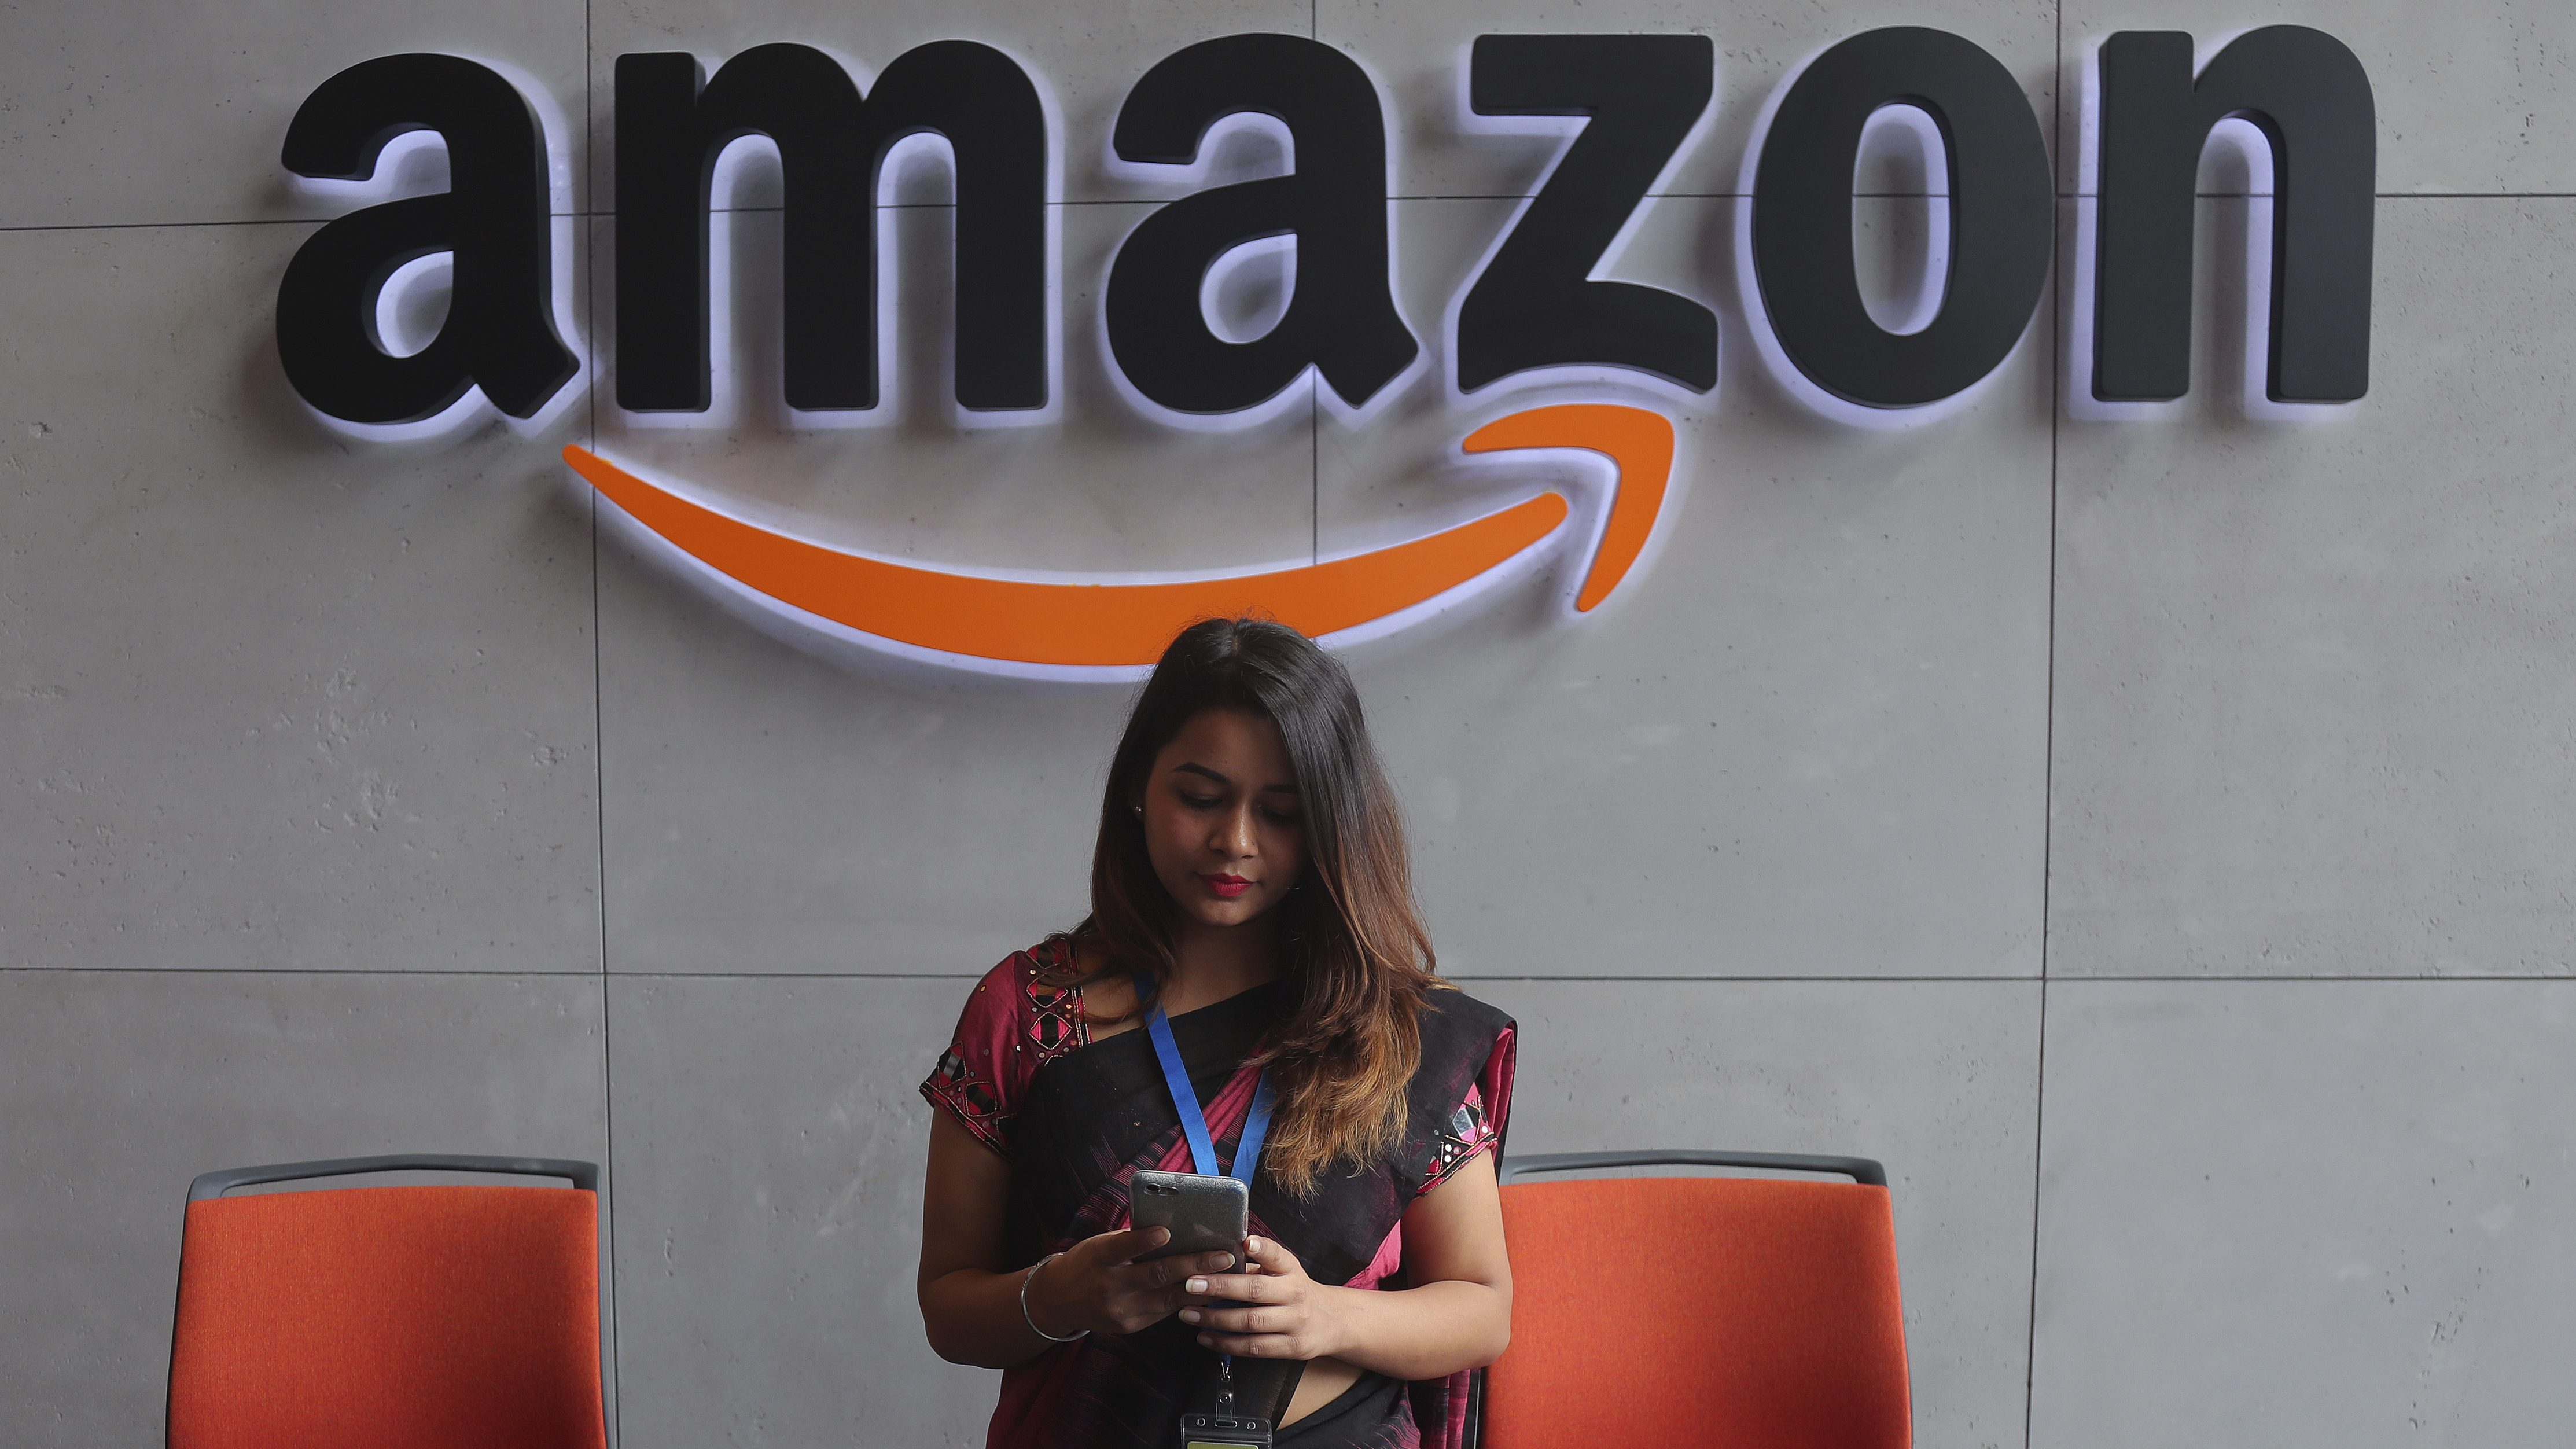 Amazon and Flipkart are India's top m-commerce apps, but it's Club Factory that catches the eye